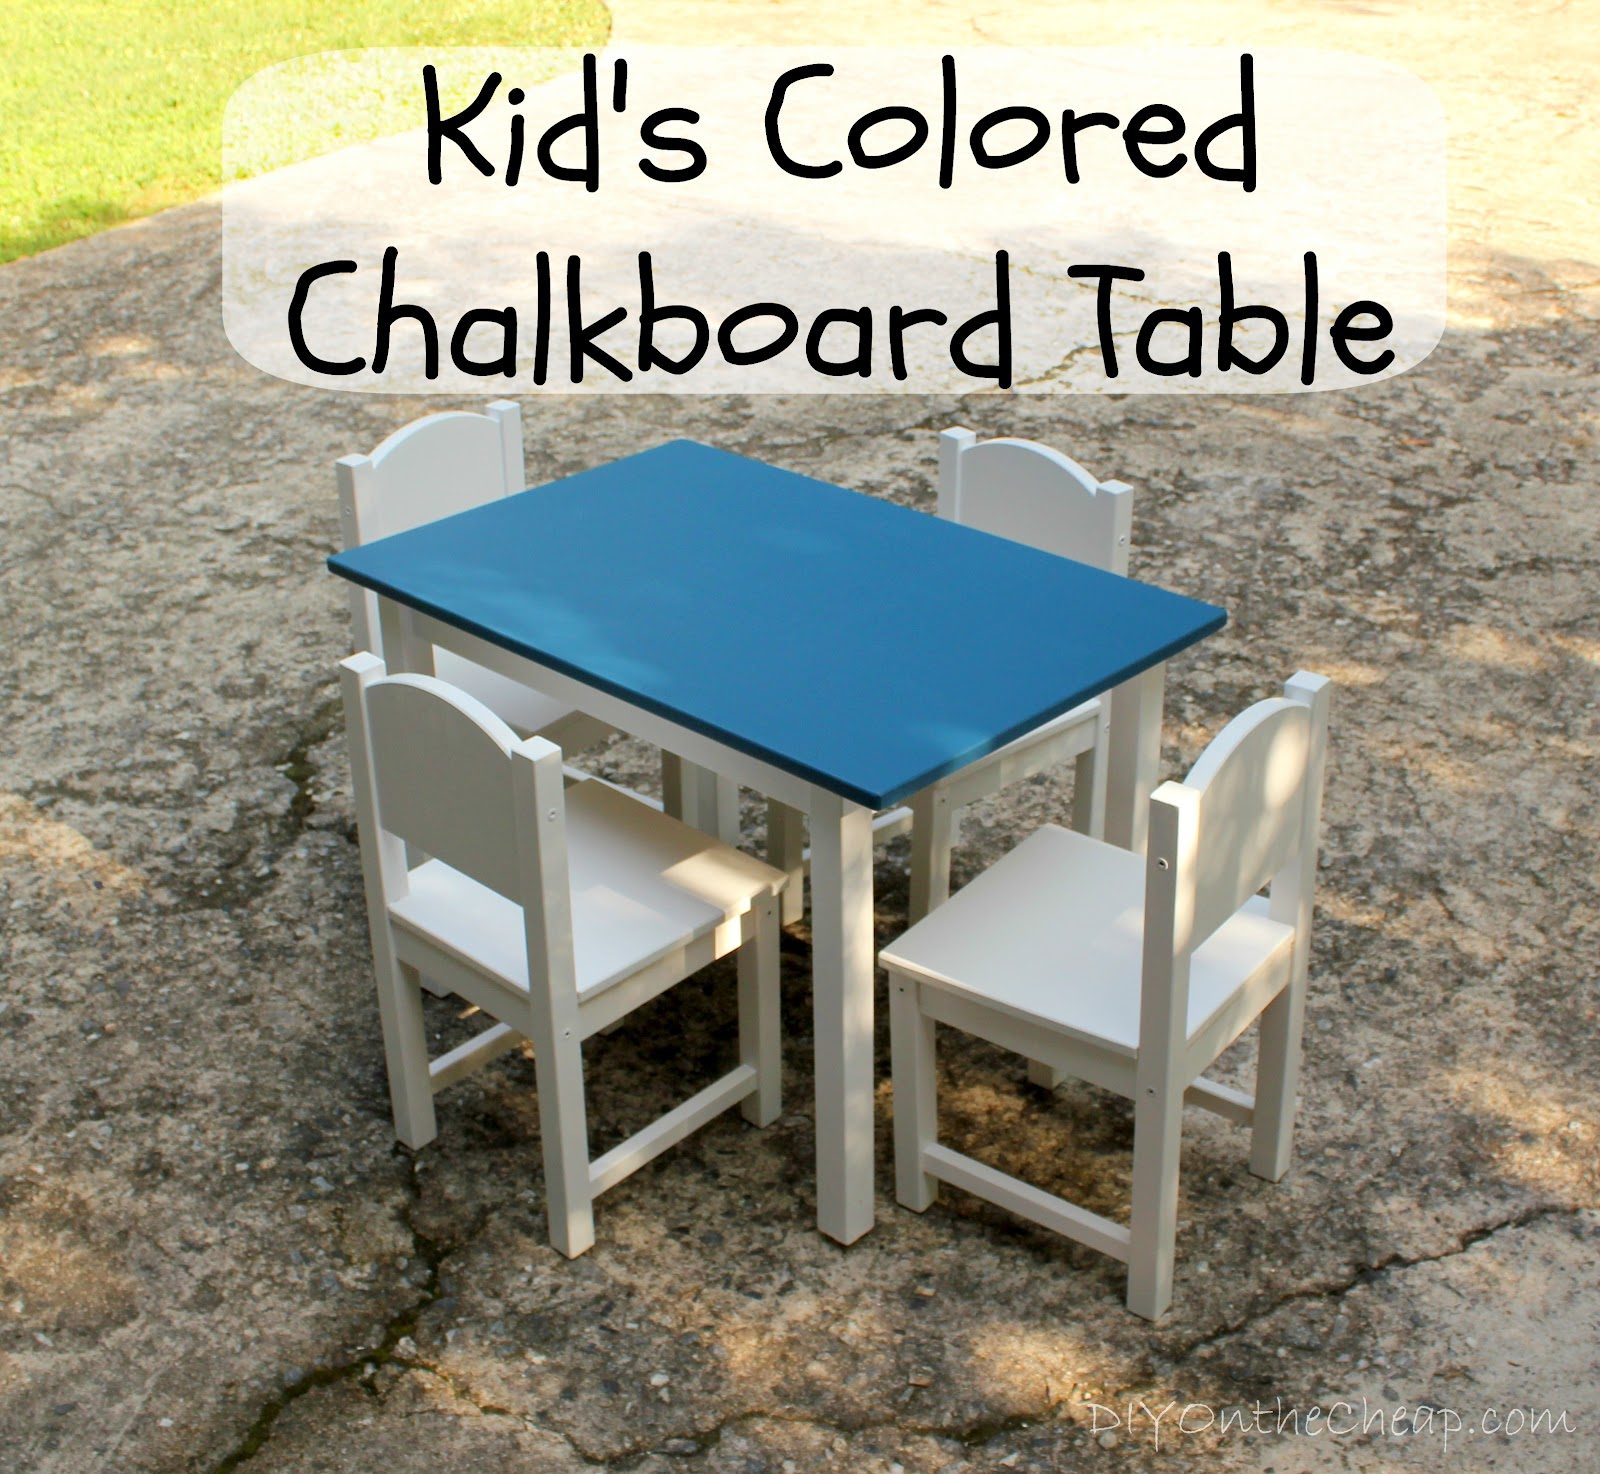 I Was Recently Given The Opportunity To Try Out Some New Colored Chalkboard  Paint By Benjamin Moore, And I Thought It Would Be The Perfect Chance To  Convert ...